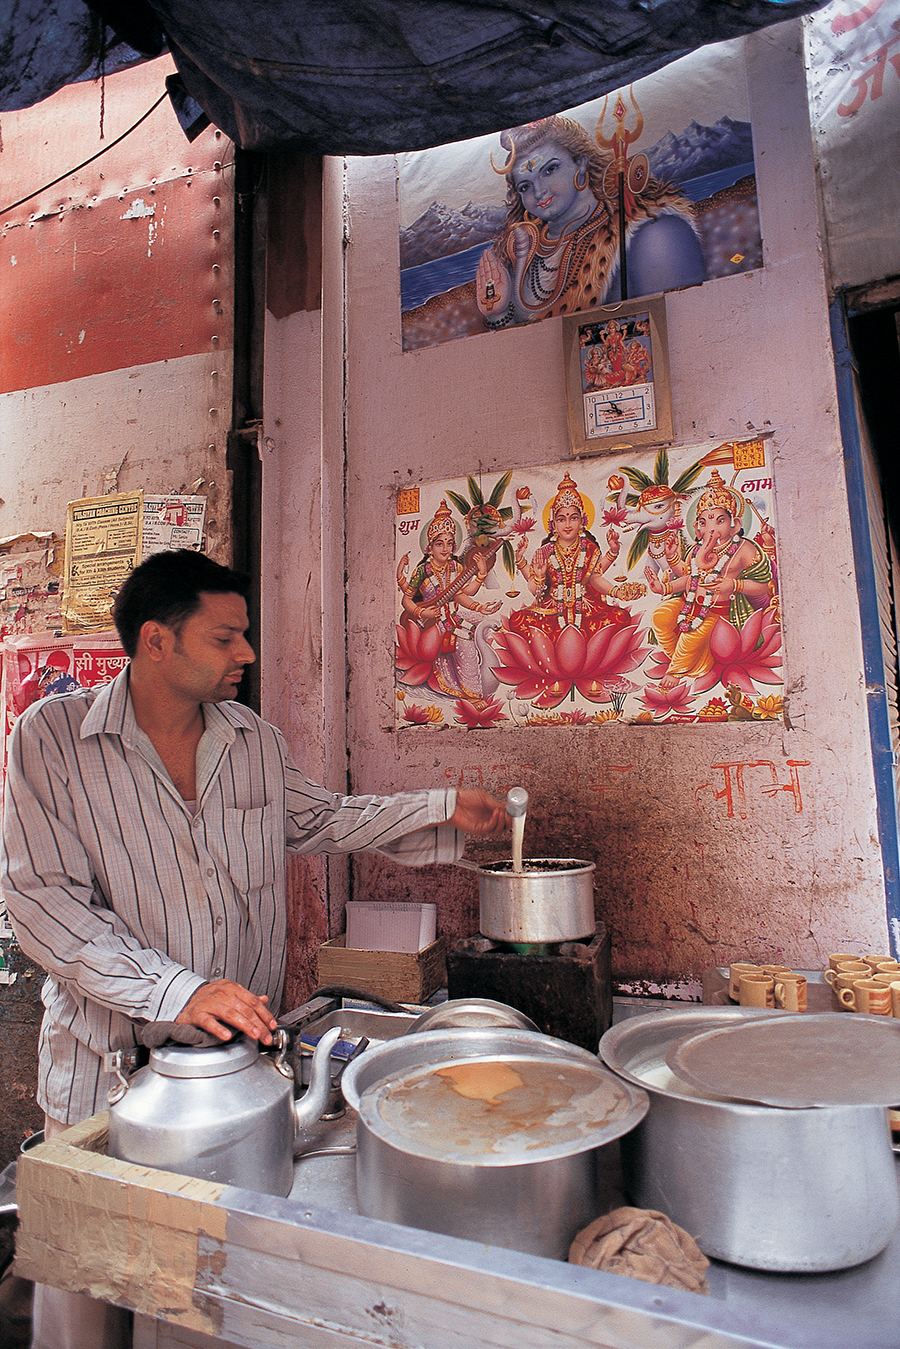 A tea stall in Chandni Chowk, Delhi. Shiva's three aspects—as the god of truth, creative energy, and darkness (as destroyer)—makes him a prominent figure in popular art, and his imagery pervades everyday life, thereby connecting earth life to a mythical one. Photo:Delhi, India